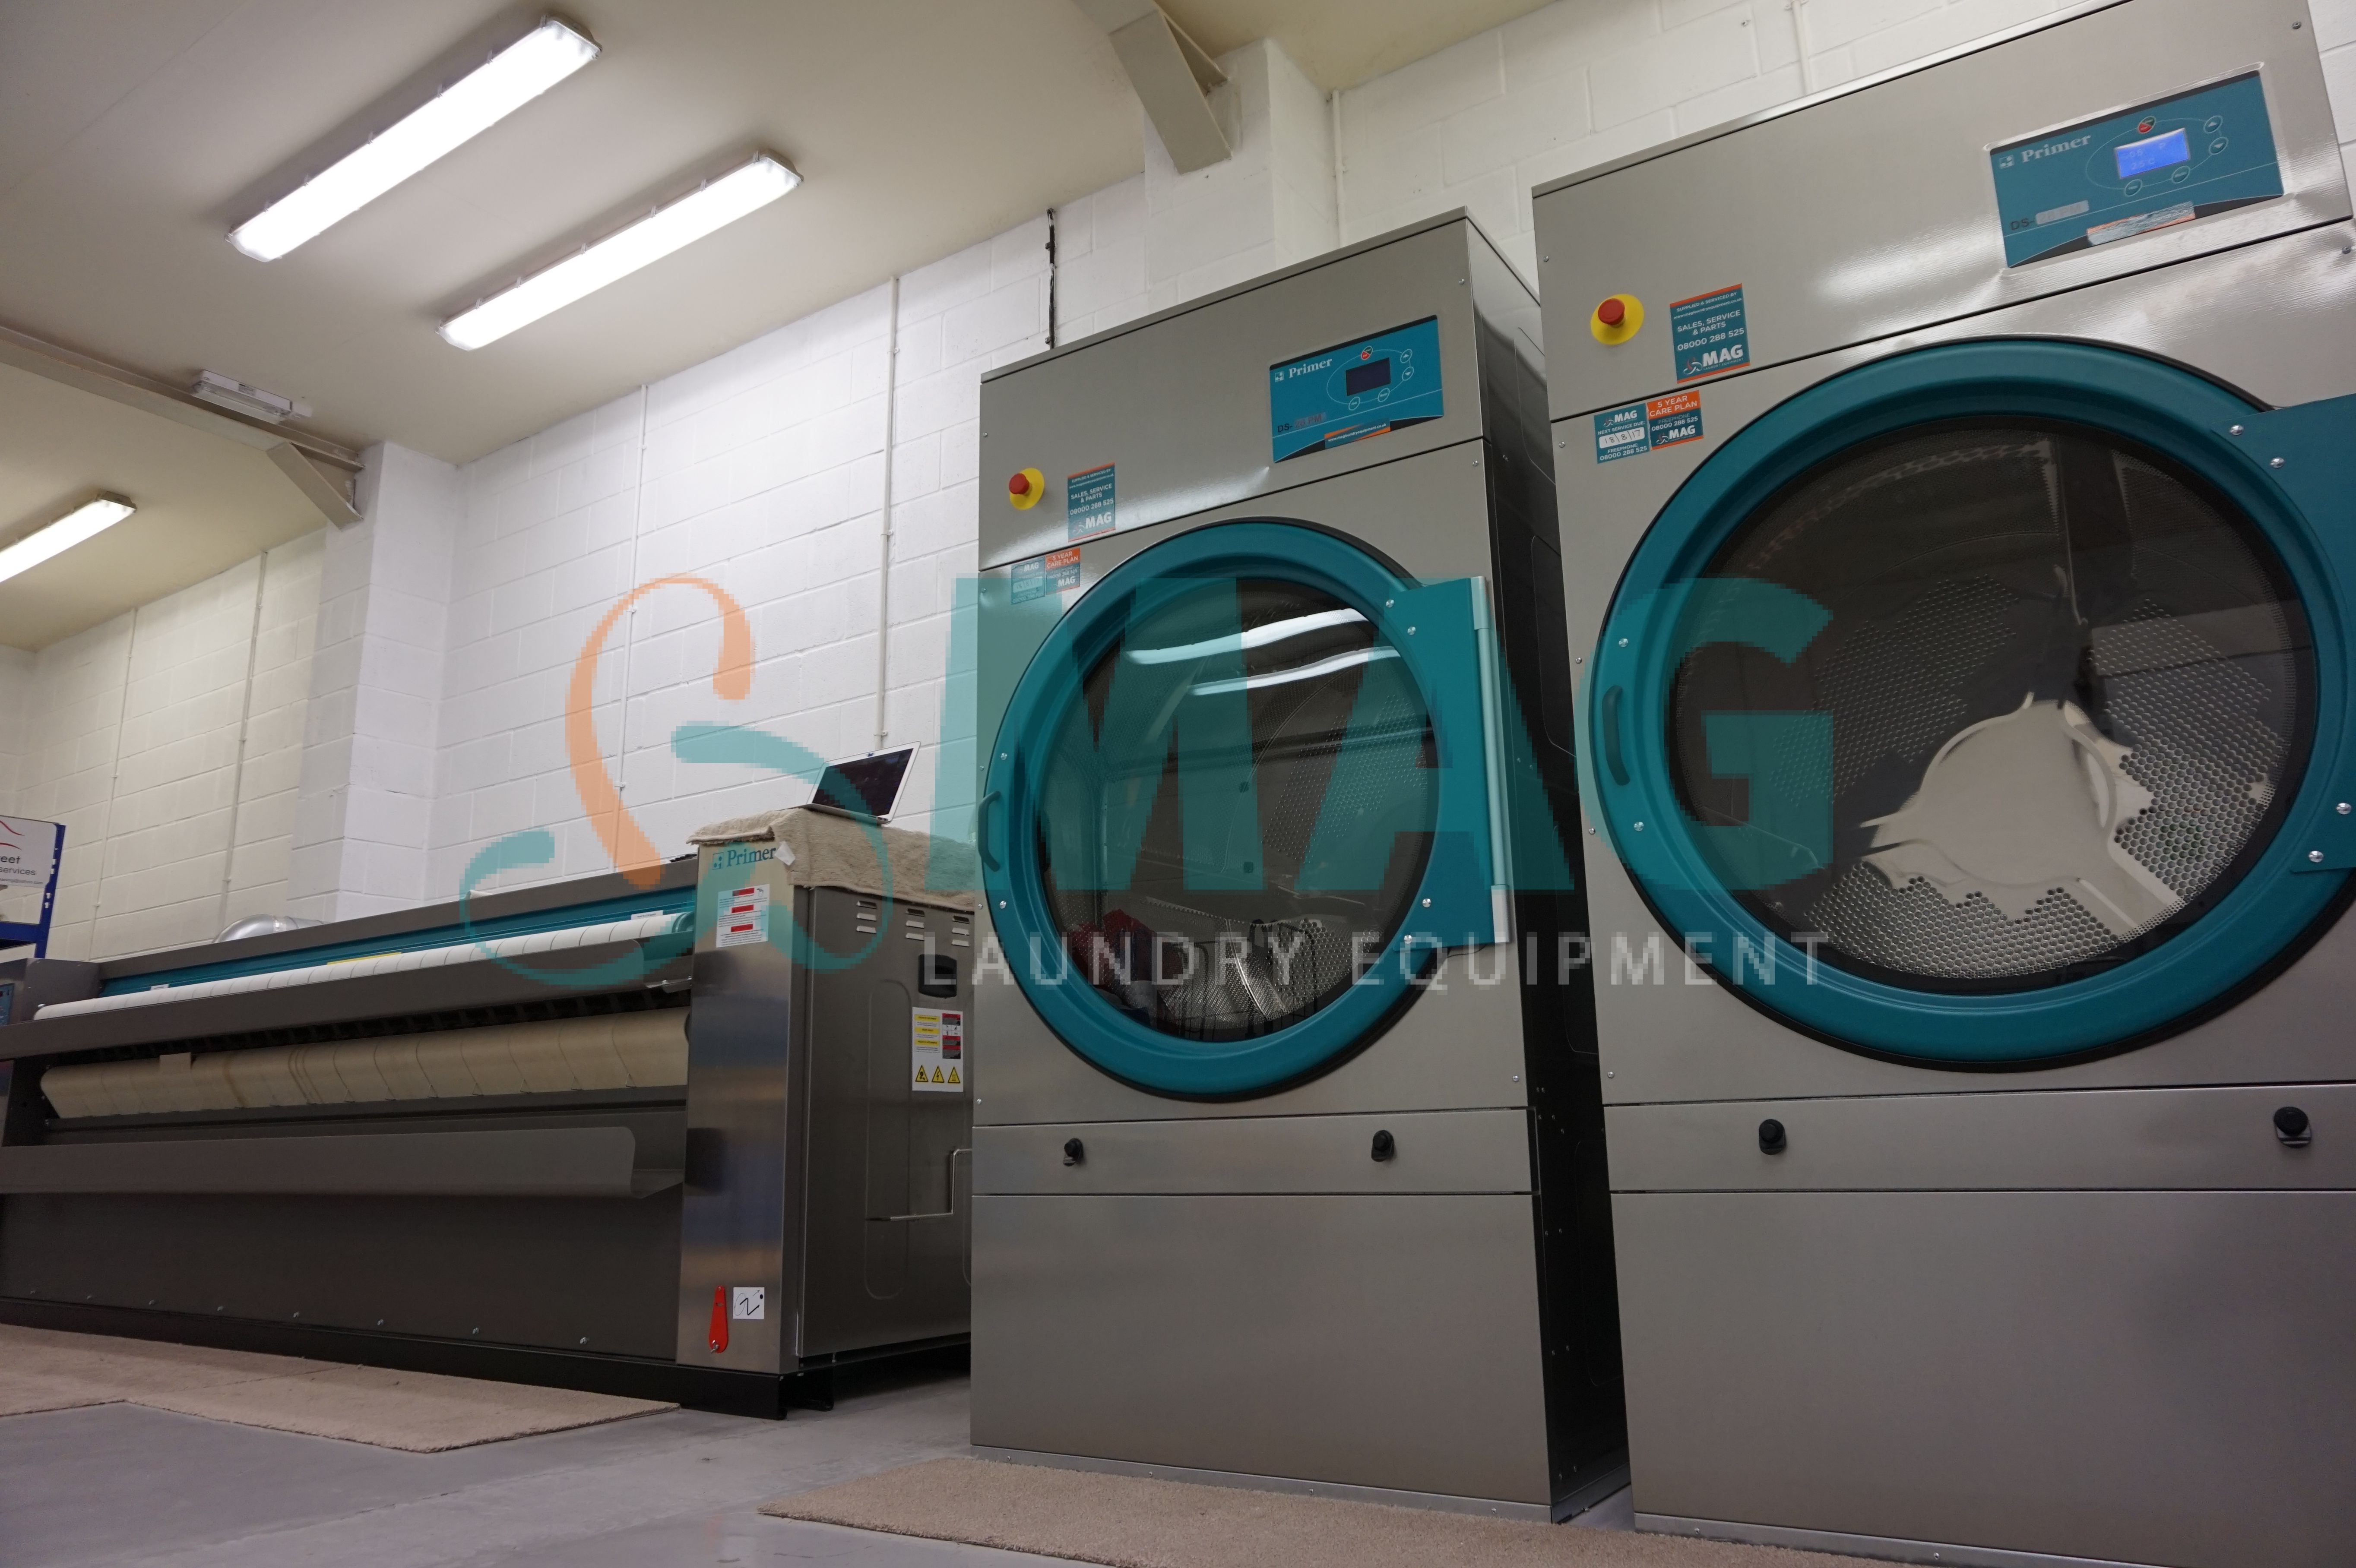 404 Laundry Equipment Laundry Commercial Laundry